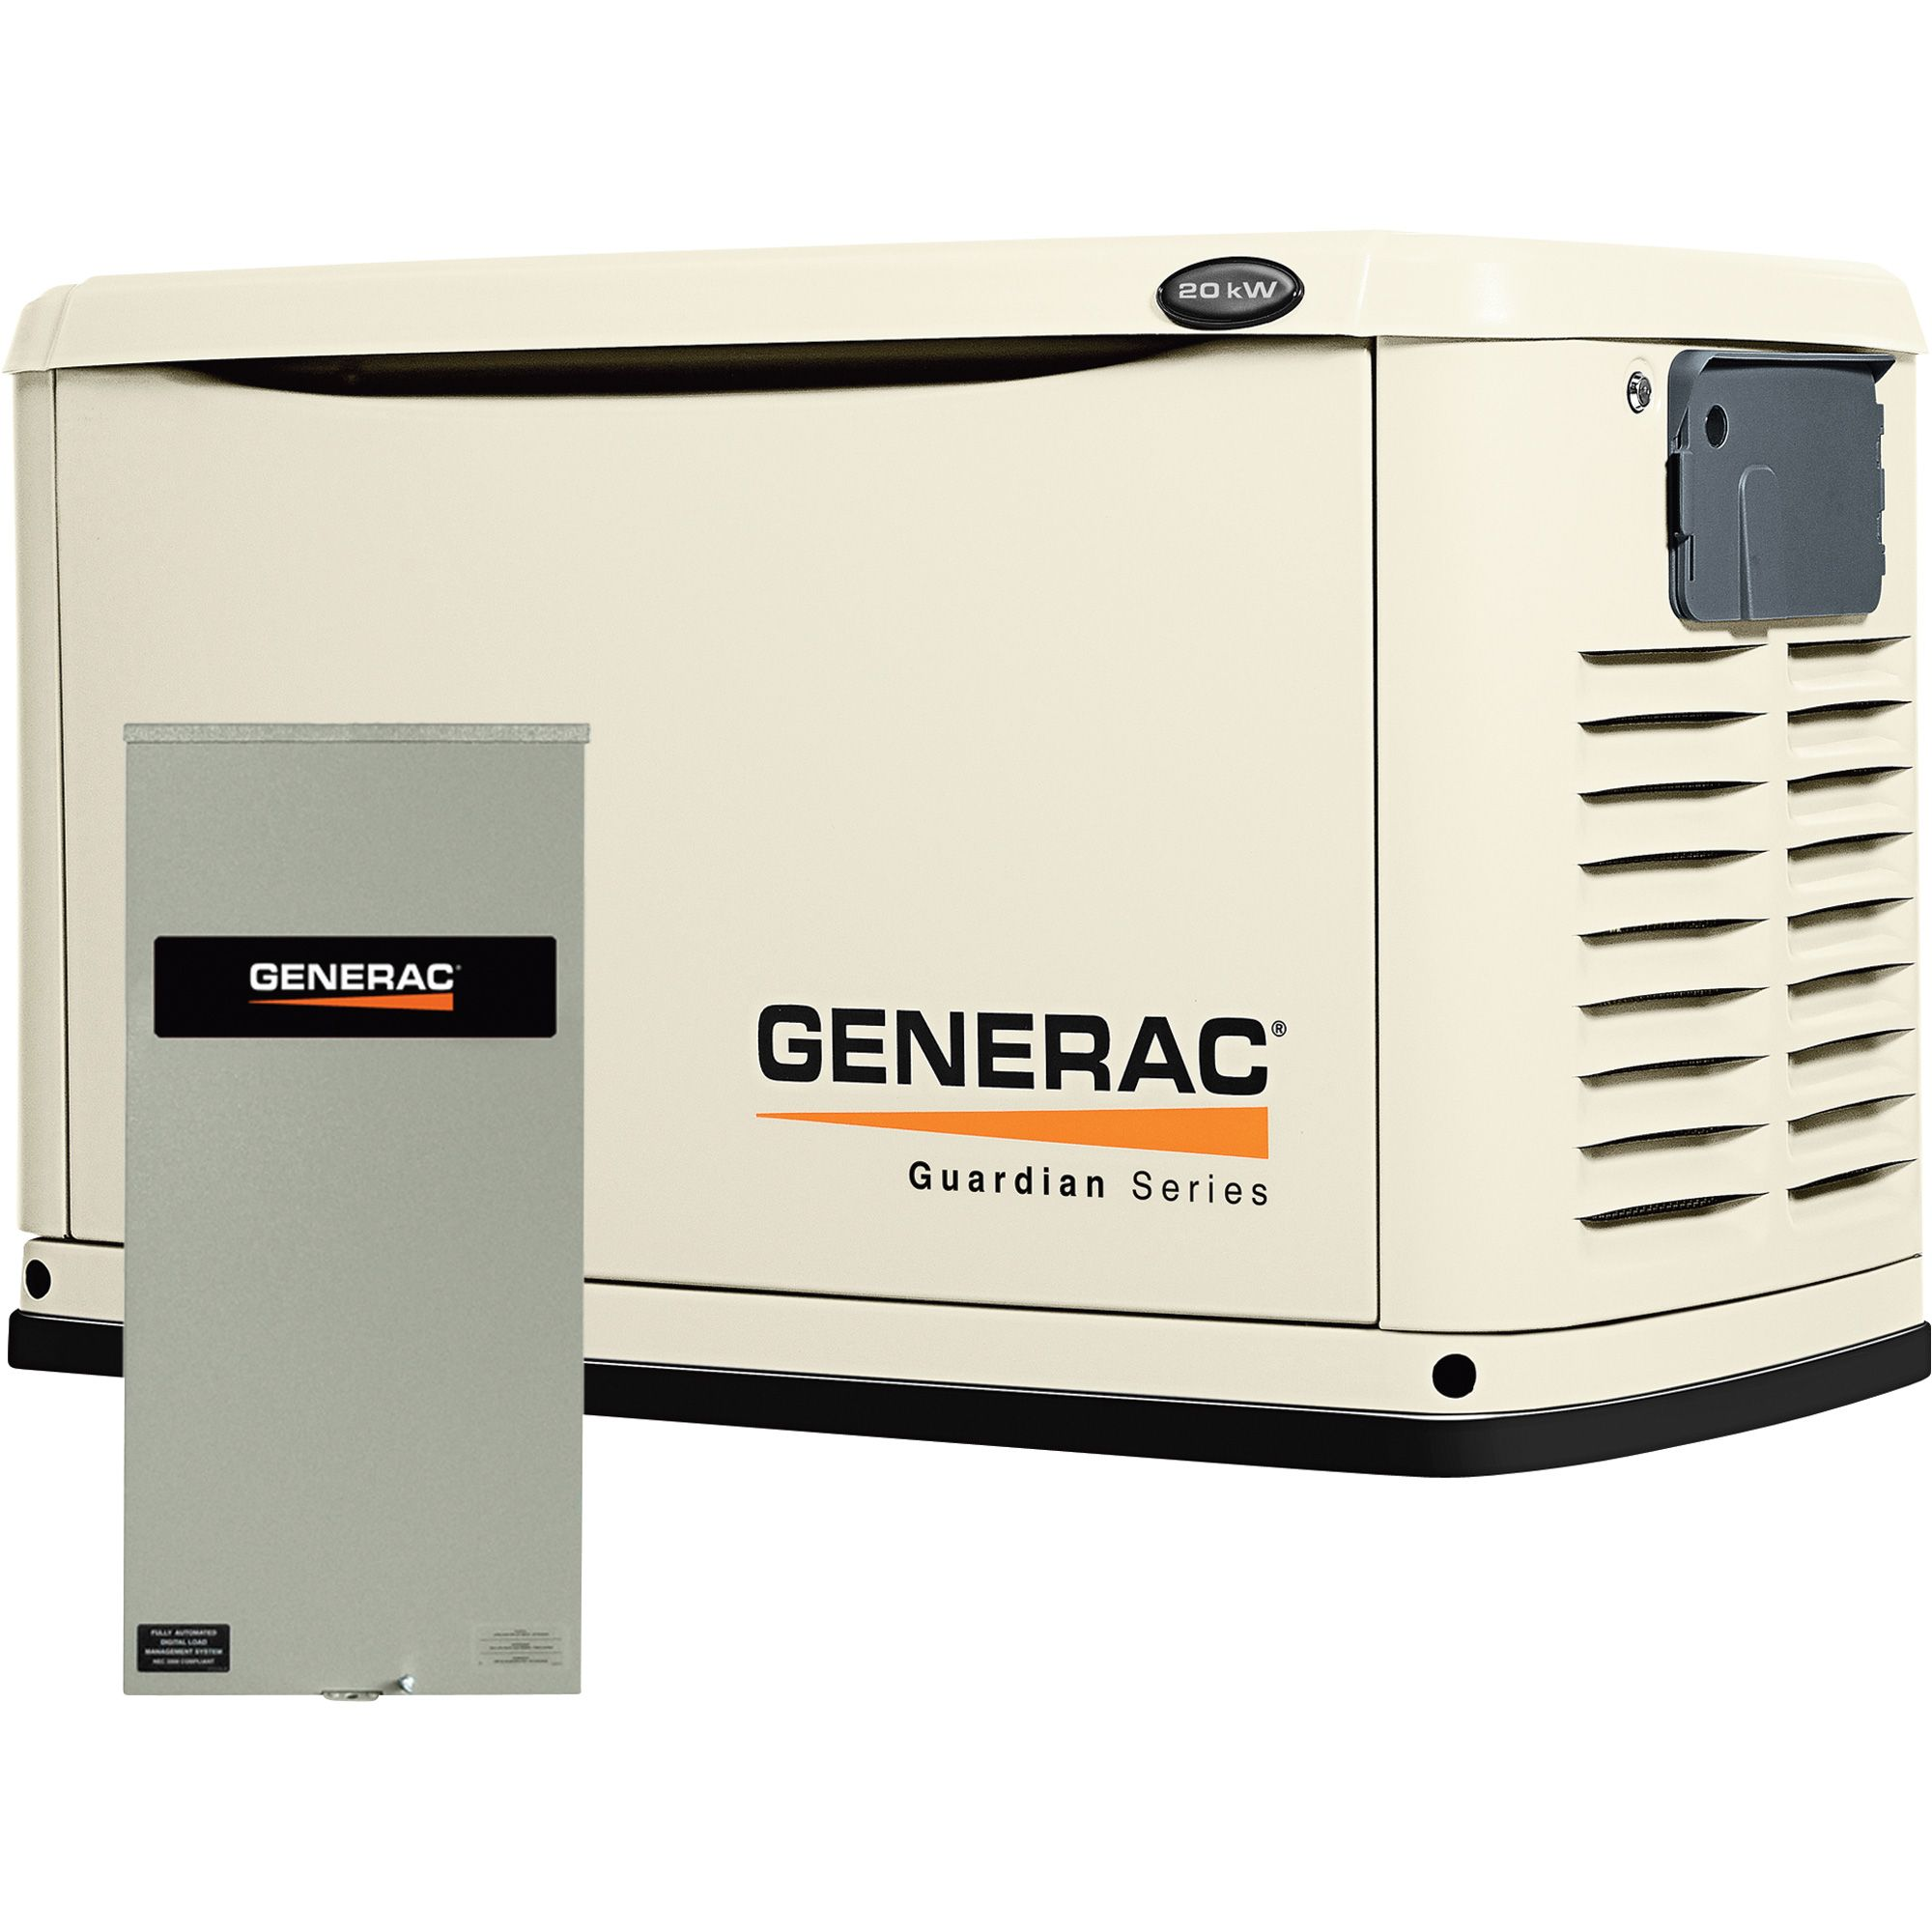 FREE SHIPPING — Generac Guardian Air Cooled Standby Generator